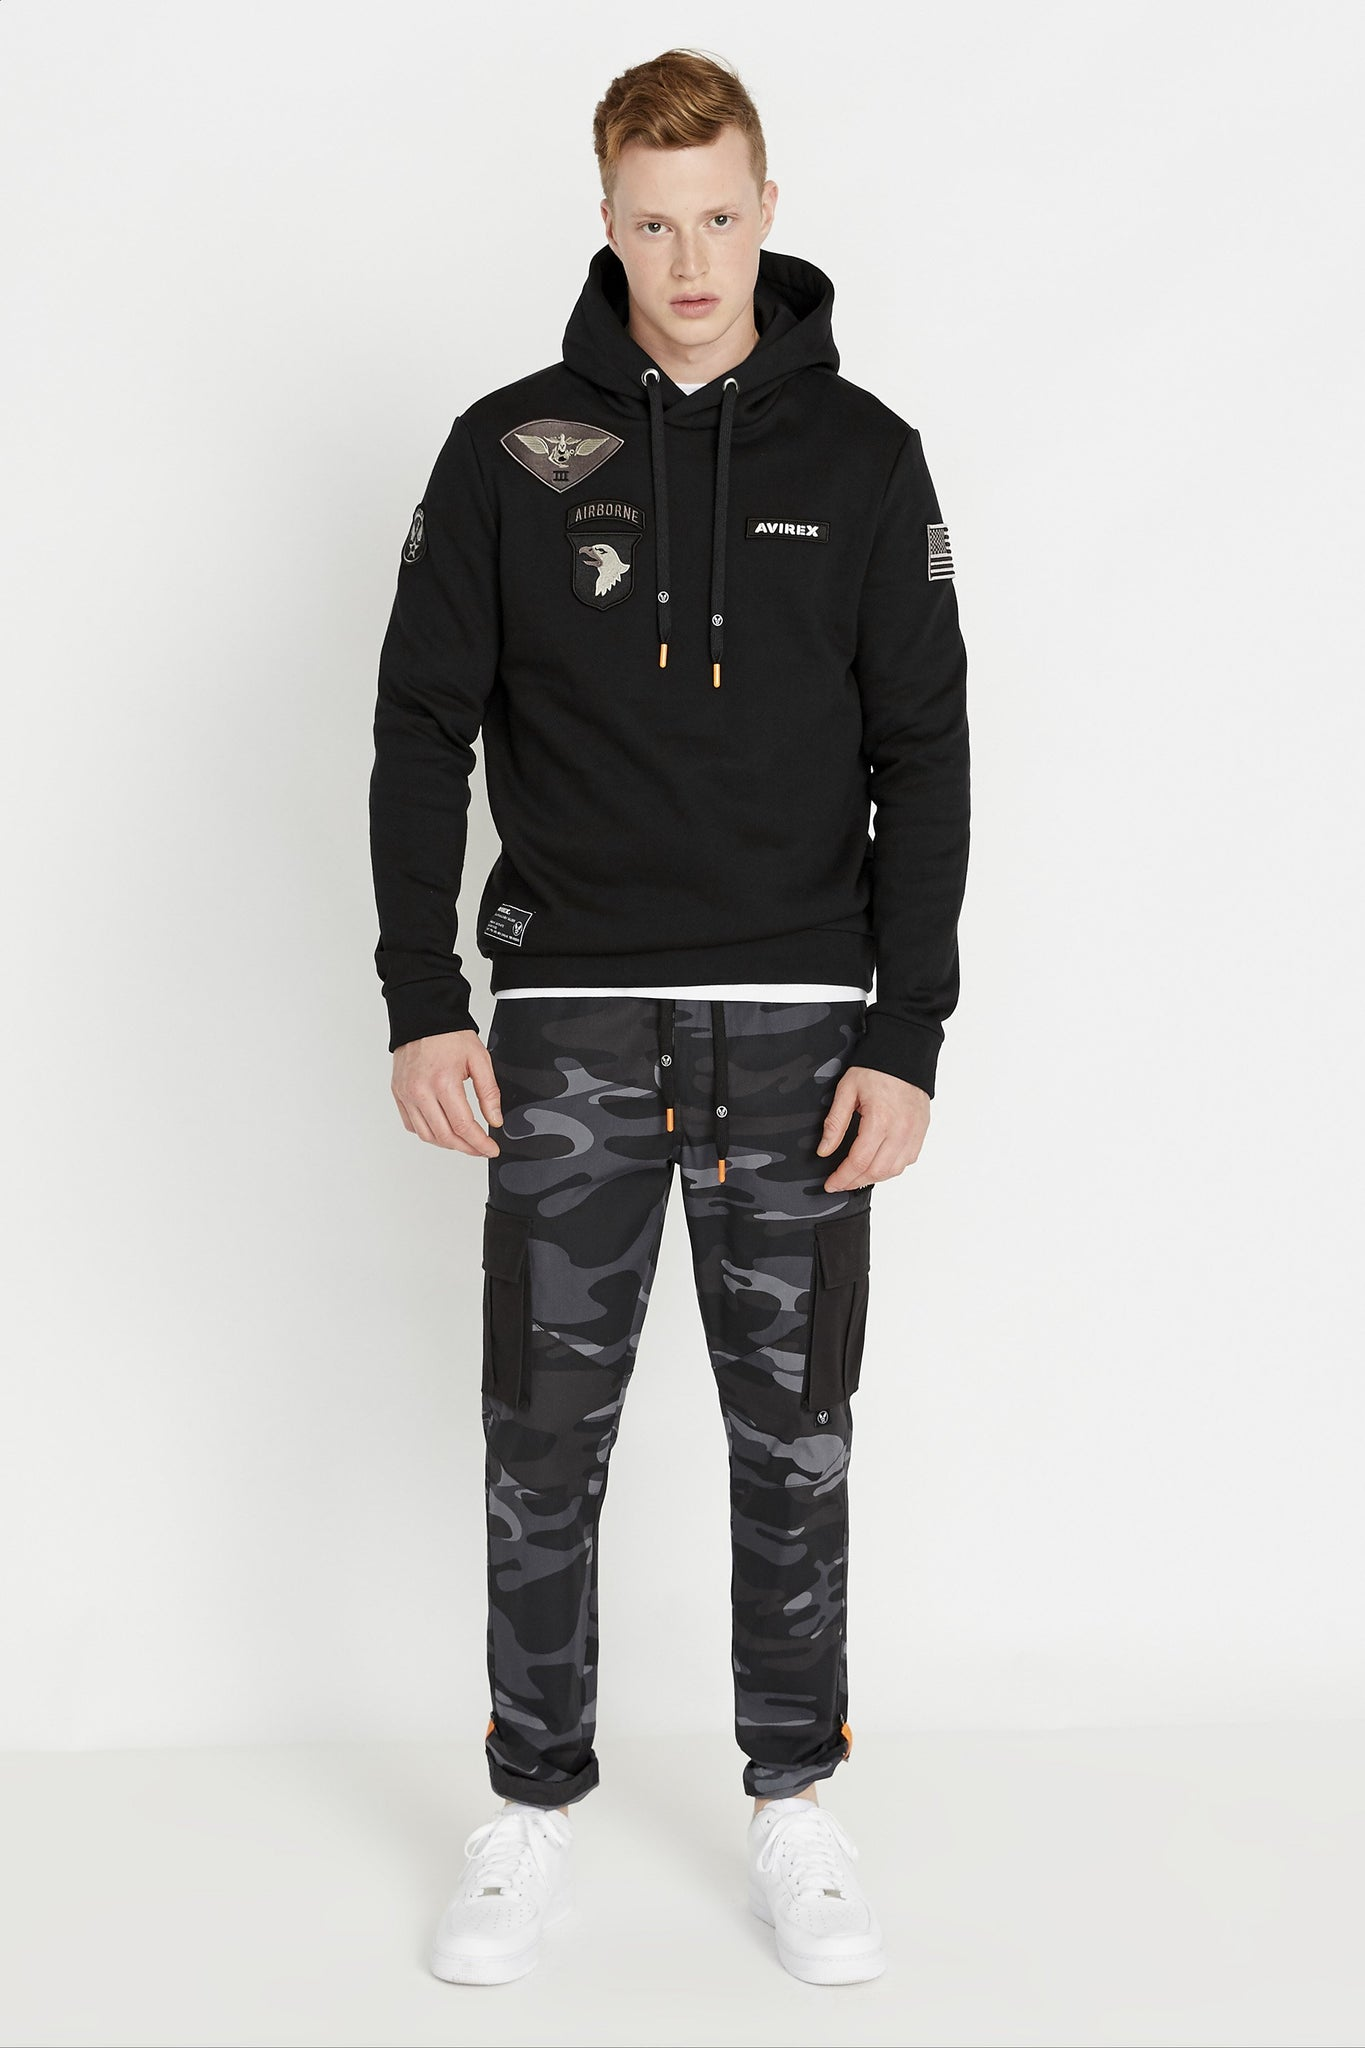 Full view of man wearing a black long sleeve hoodie sweatshirt with multi-patch design on the chest and on the sleeve and black camo print pants